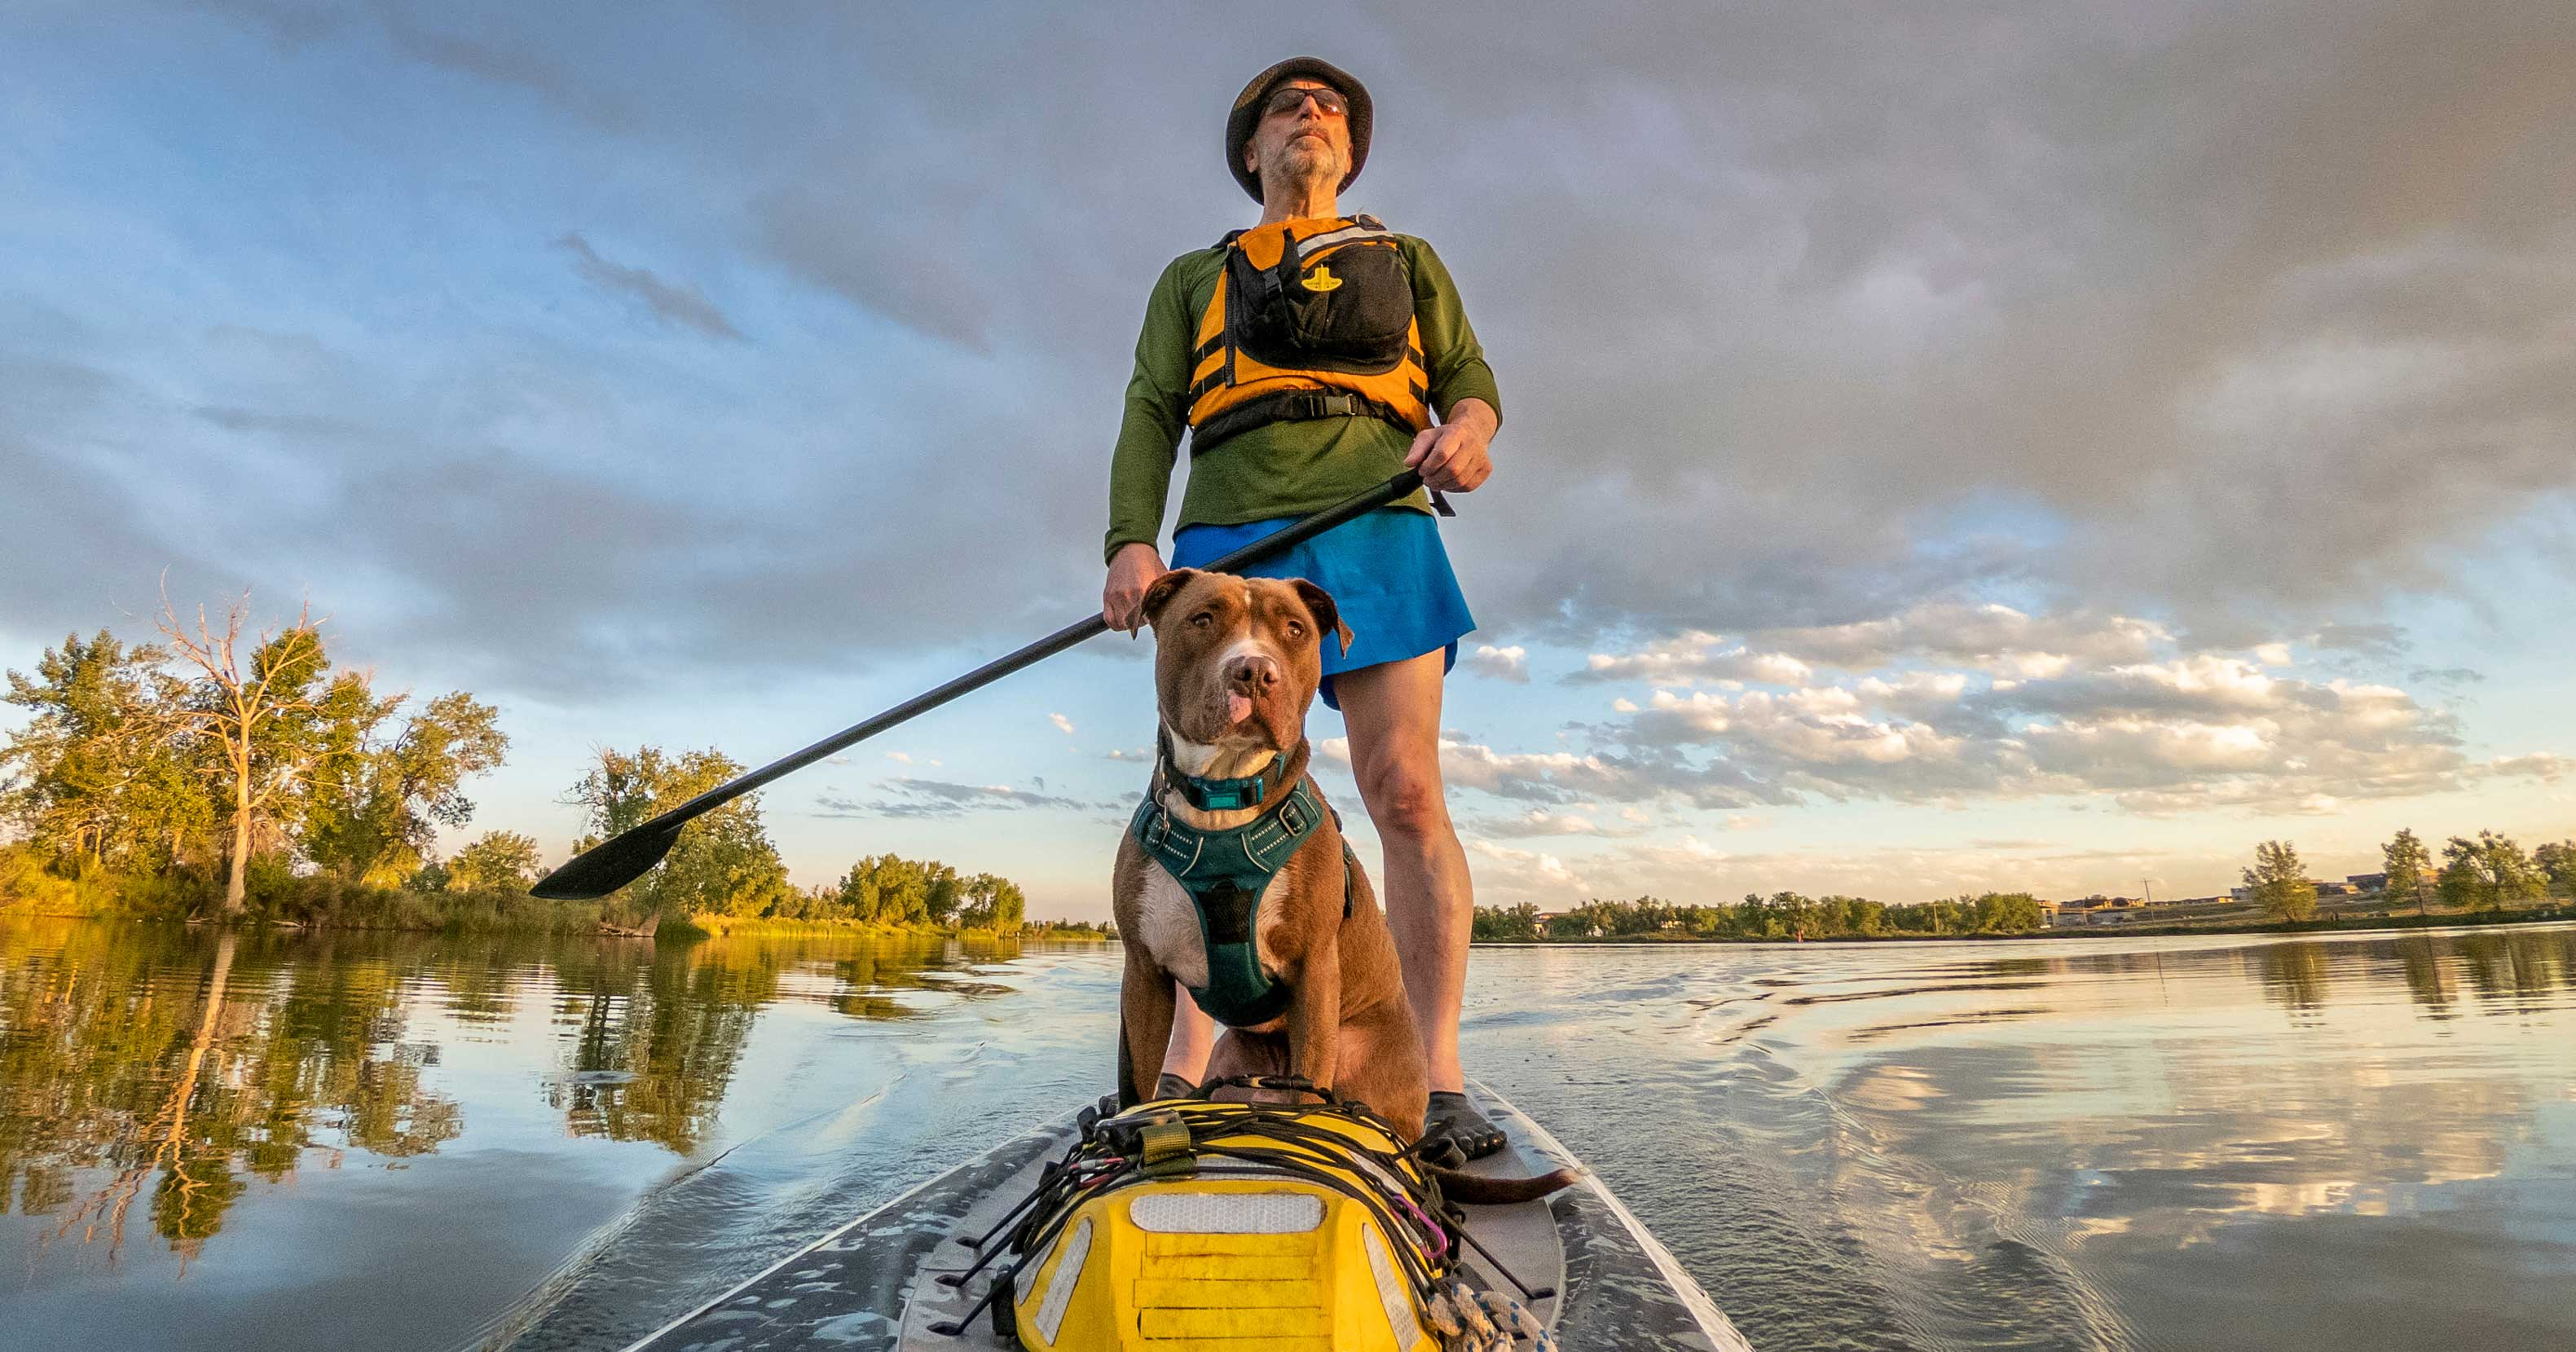 Older Man on Stand-Up Paddle Boat with Pit Bull Dog | Diamond Pet Foods